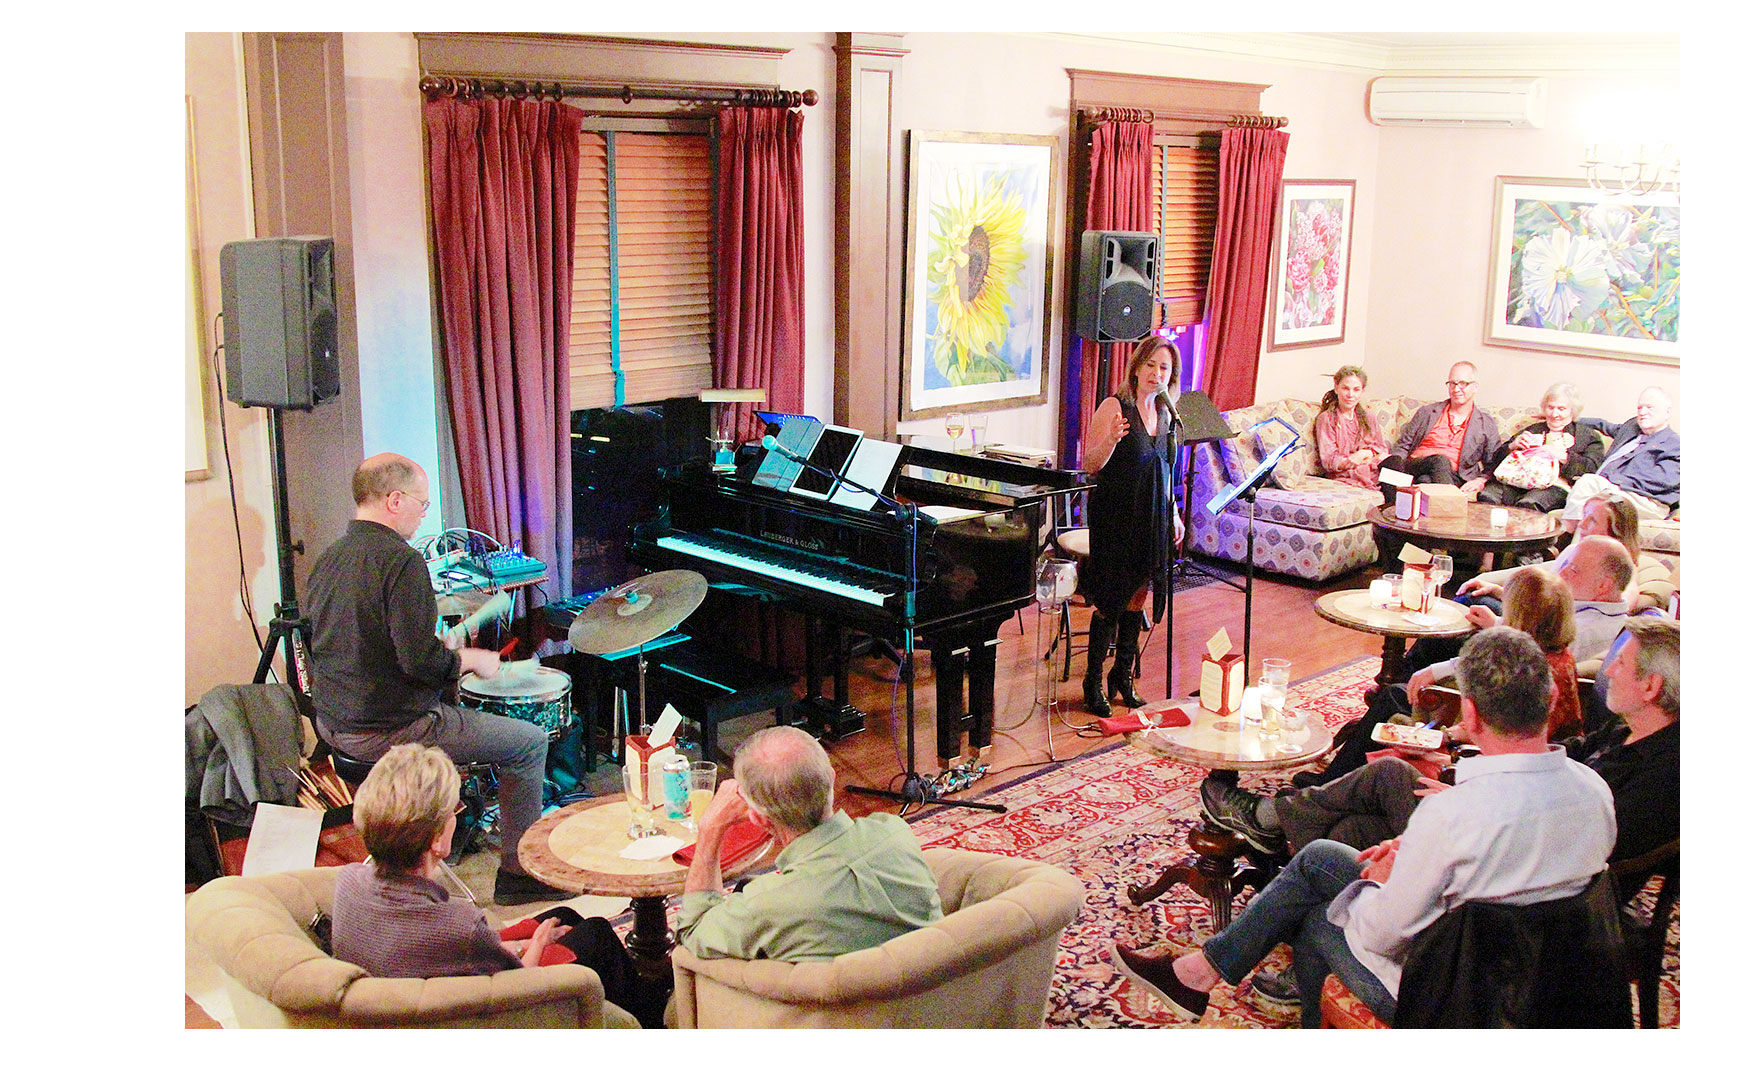 Live music in the lounge with many people sitting and enjoying the music.